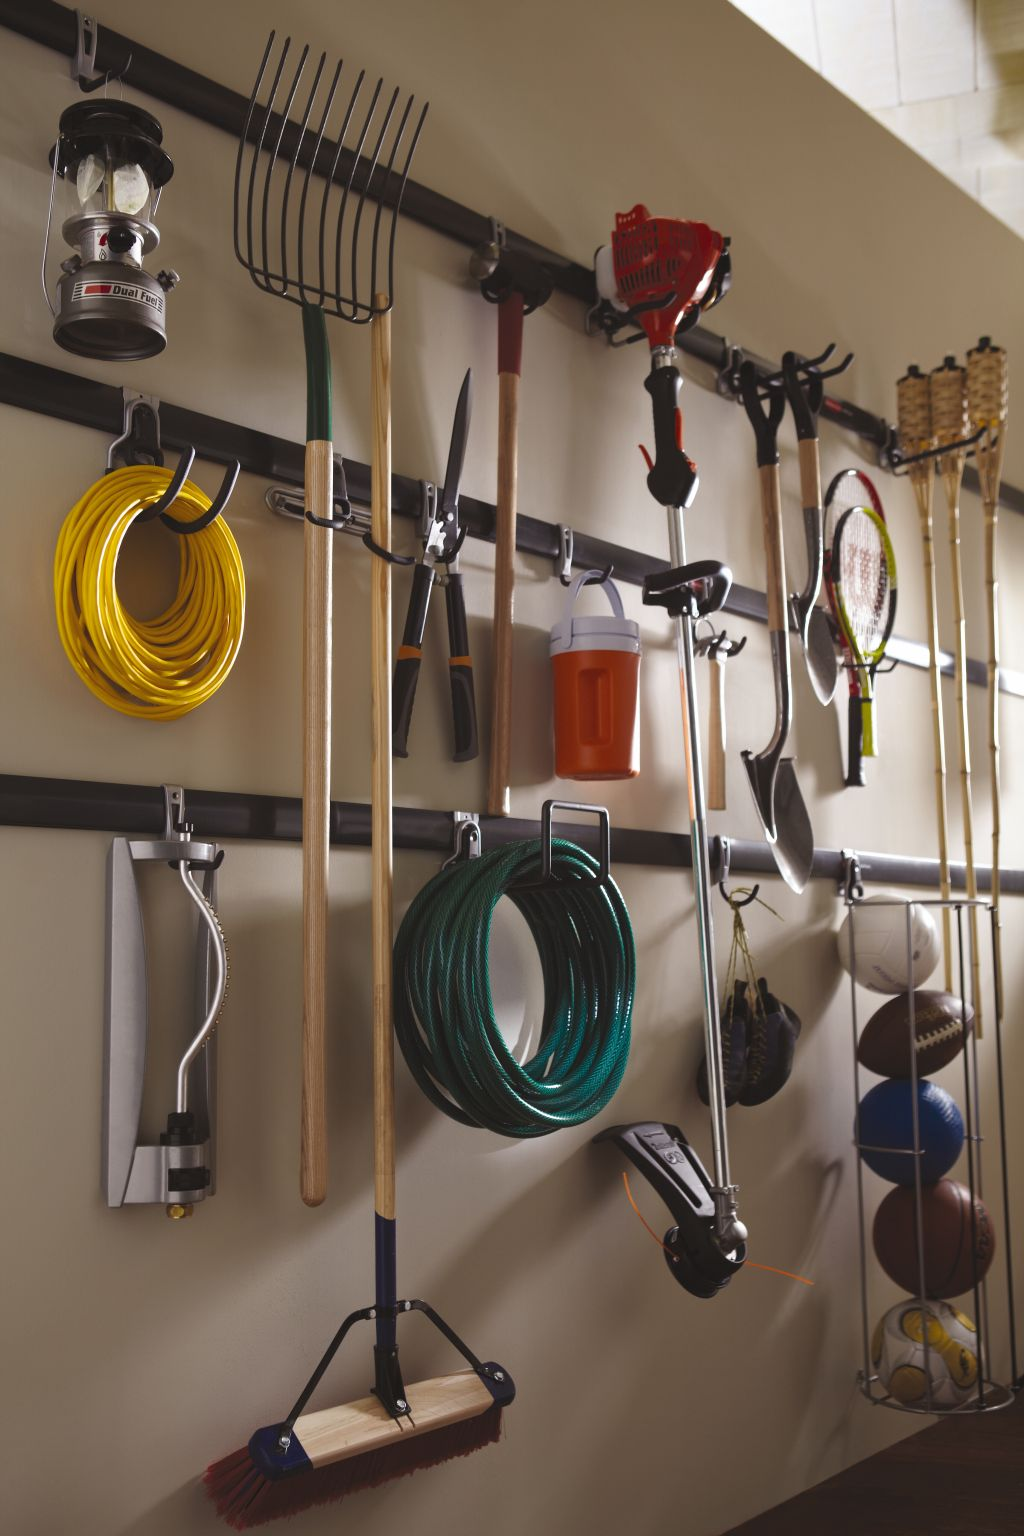 organized tips overloaded for organization garage you home easily so semi find can is diy women here things needed